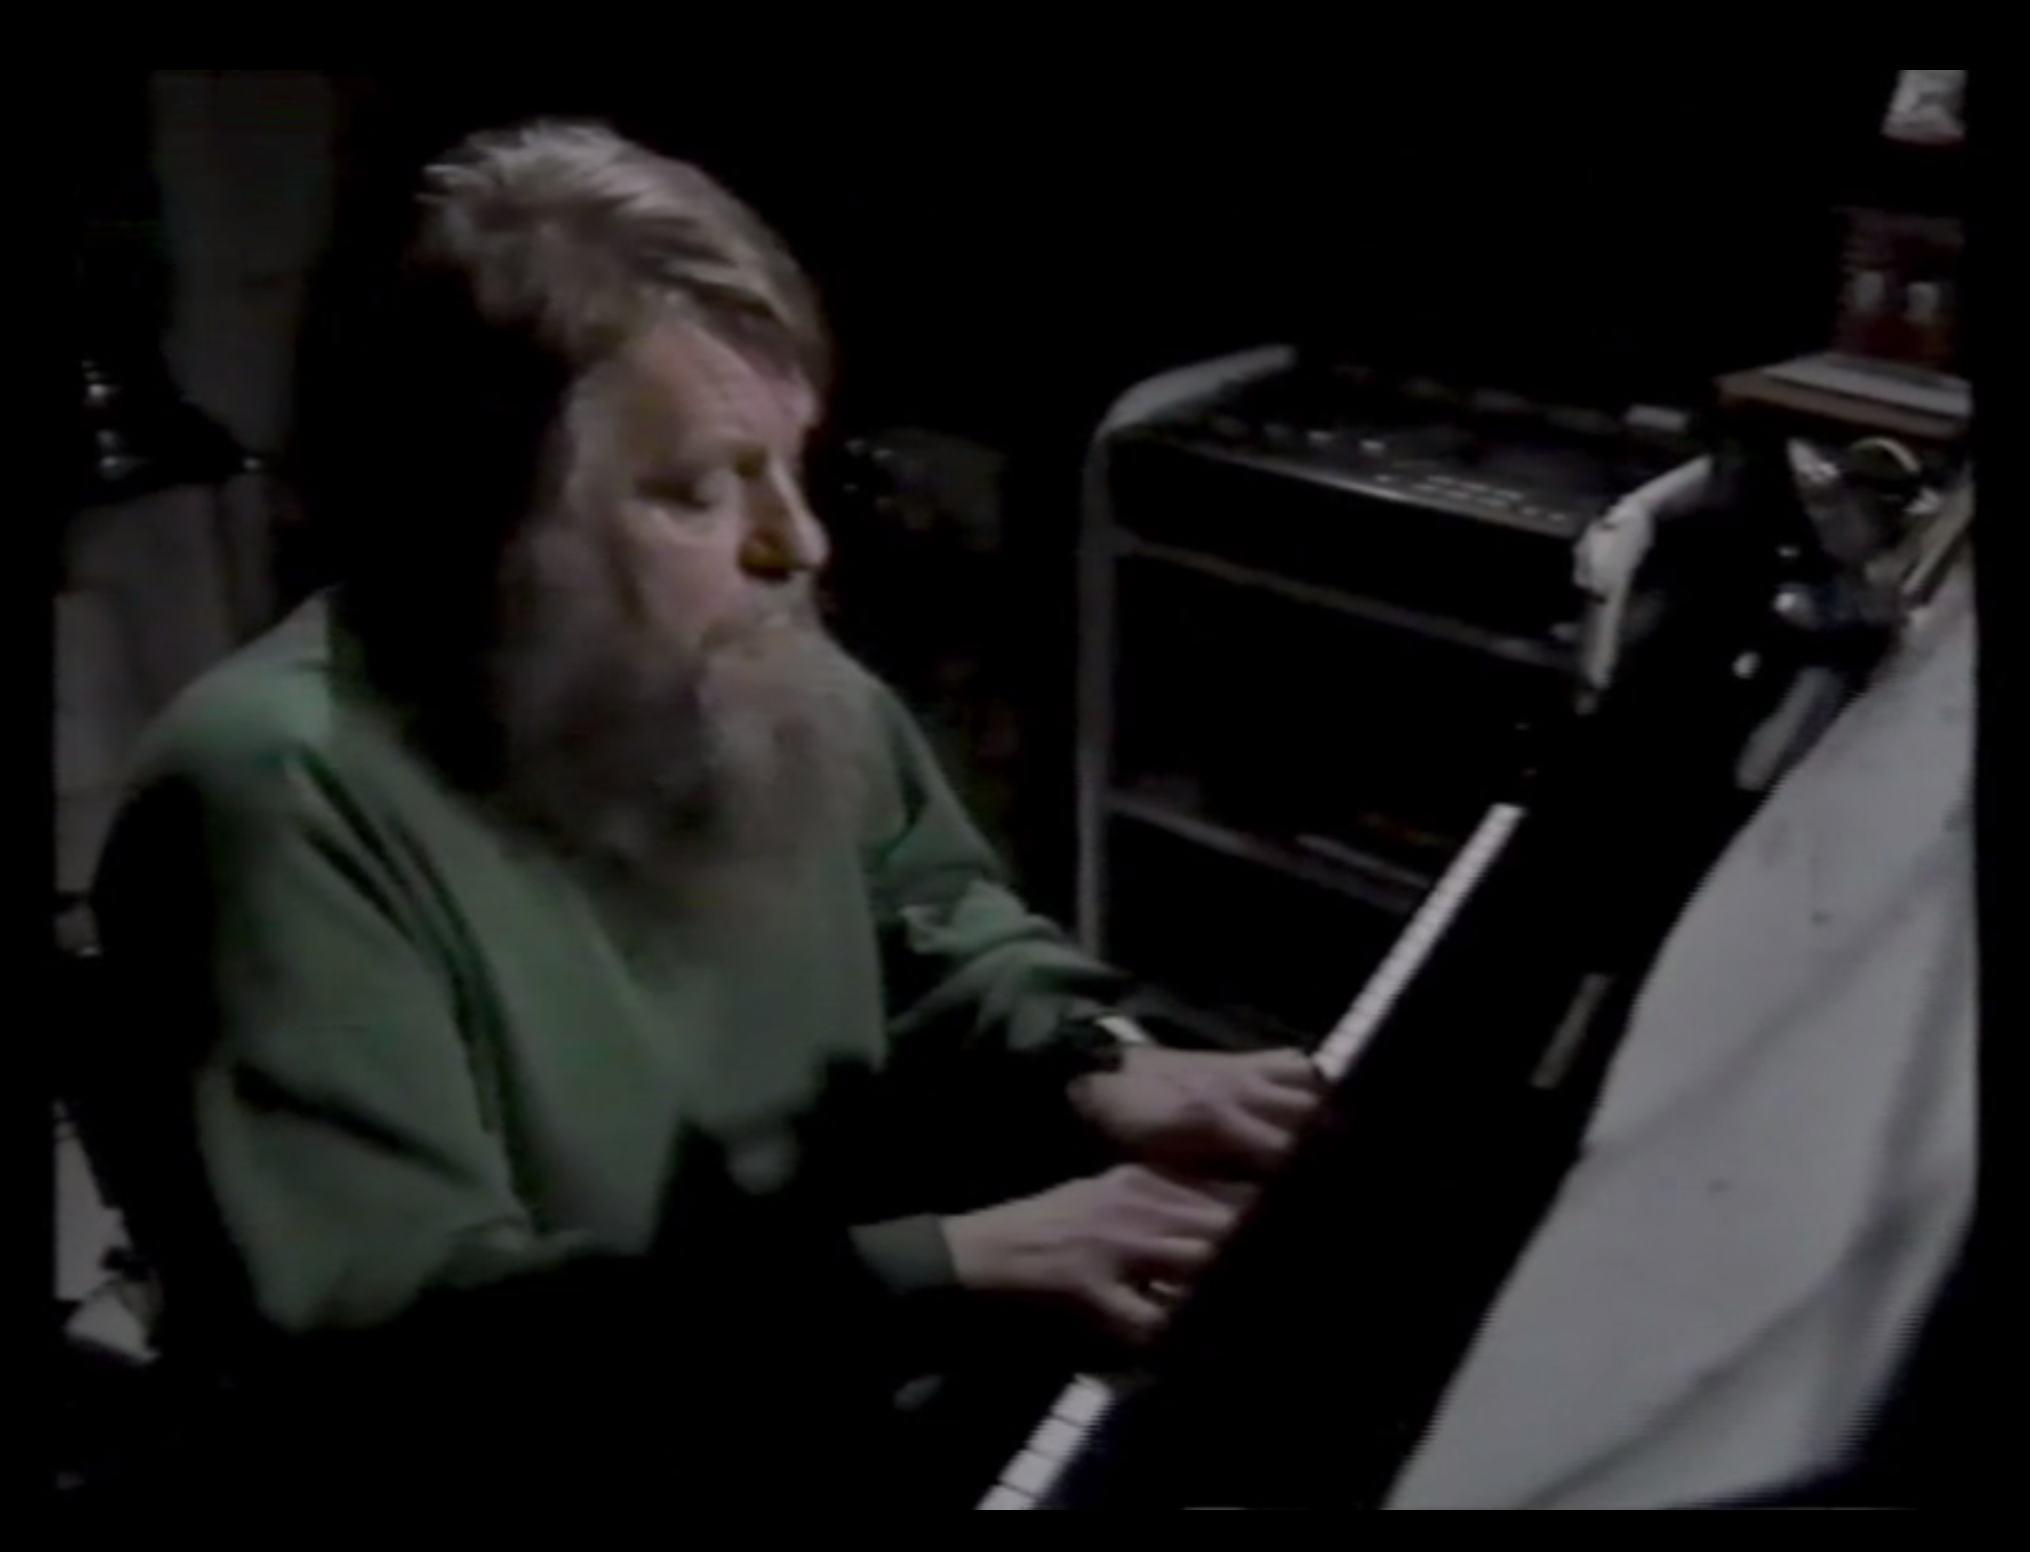 Robert Wyatt, Part 1 (1992) de Nicolas Klotz